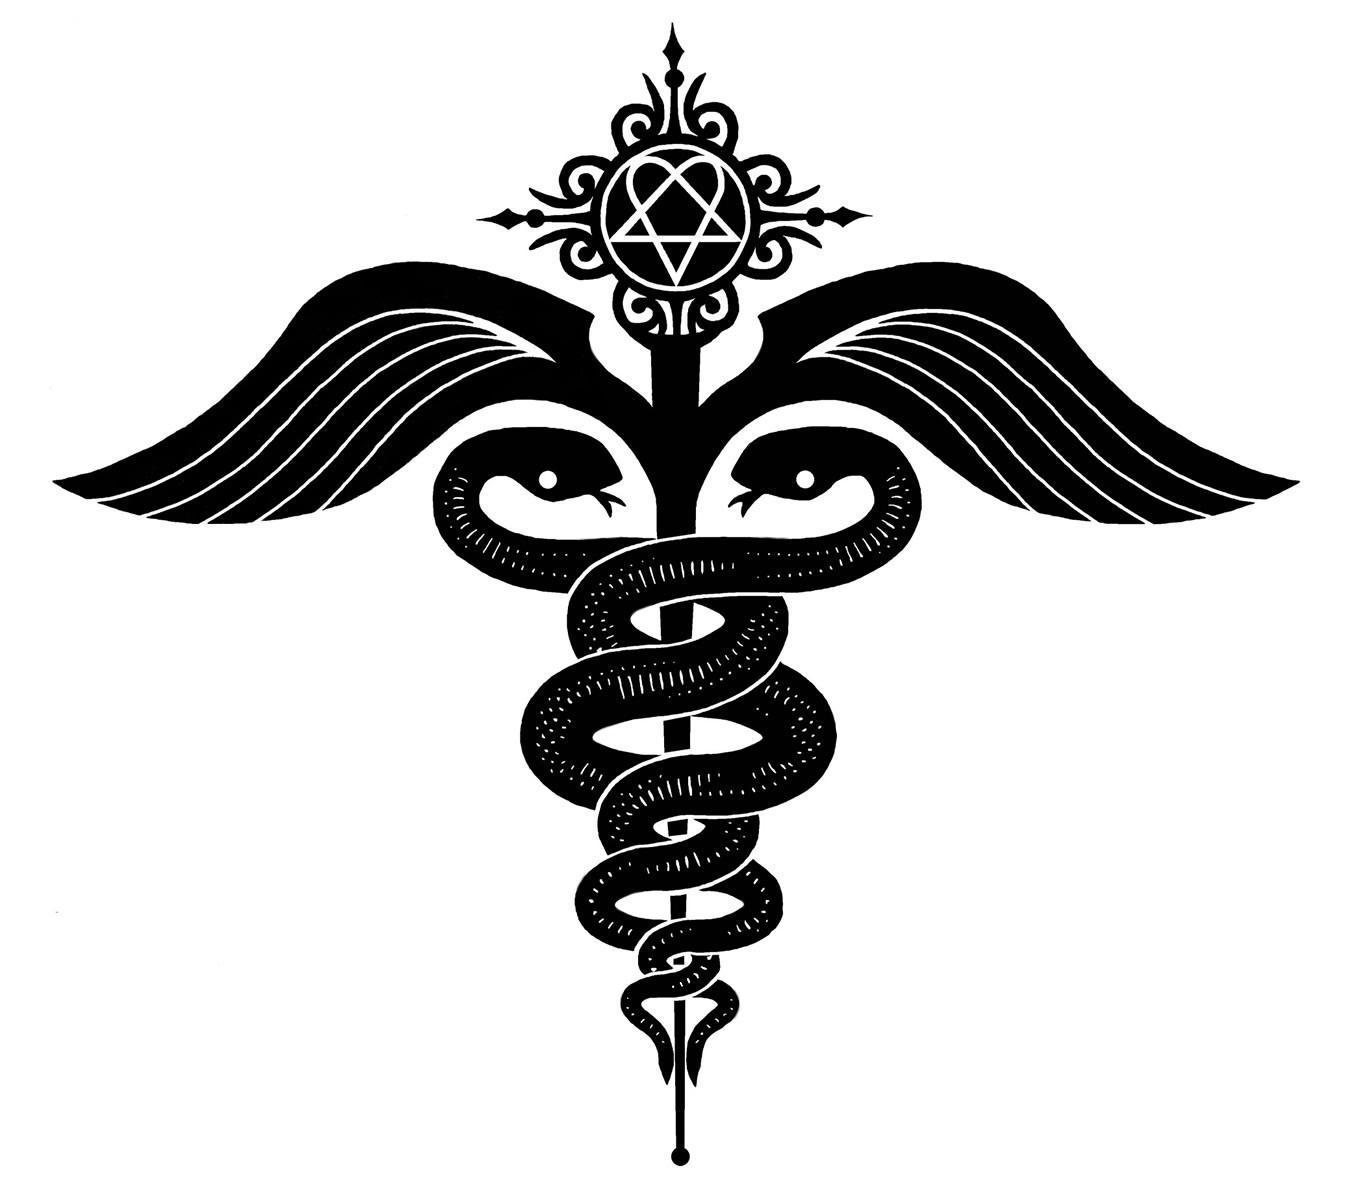 Pro med ambulance logo clipart black and white jpg free download Free Caduceus, Download Free Clip Art, Free Clip Art on ... jpg free download